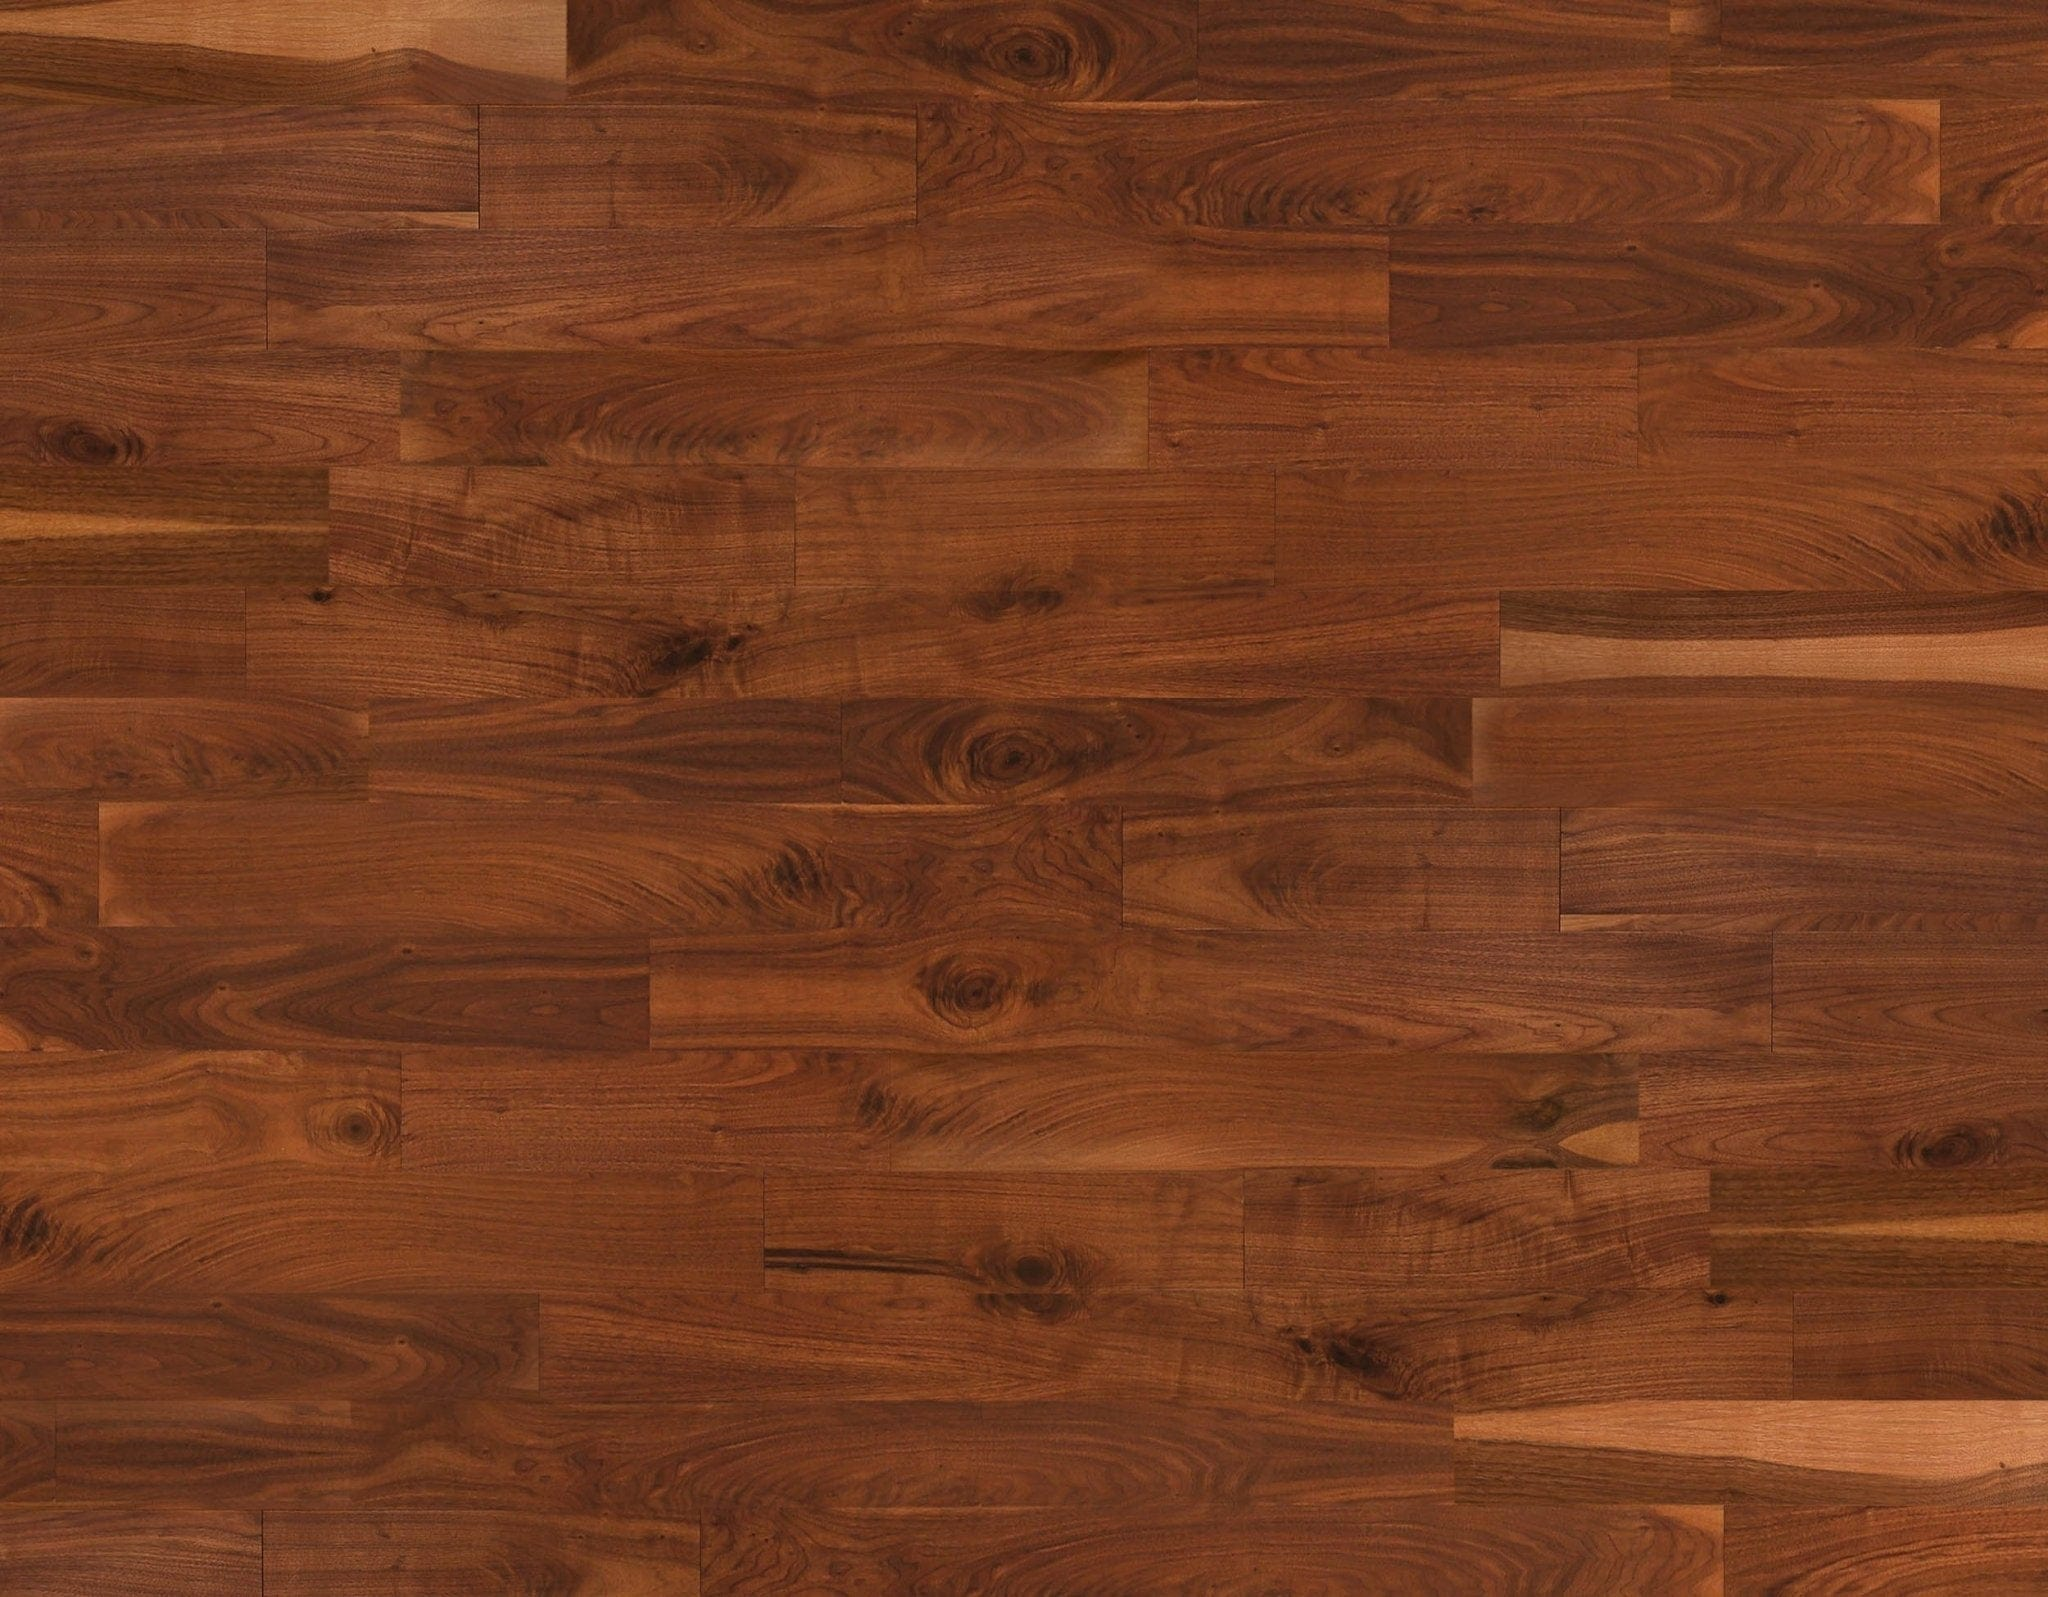 Wainscoting Sample Pack - Wallplanks